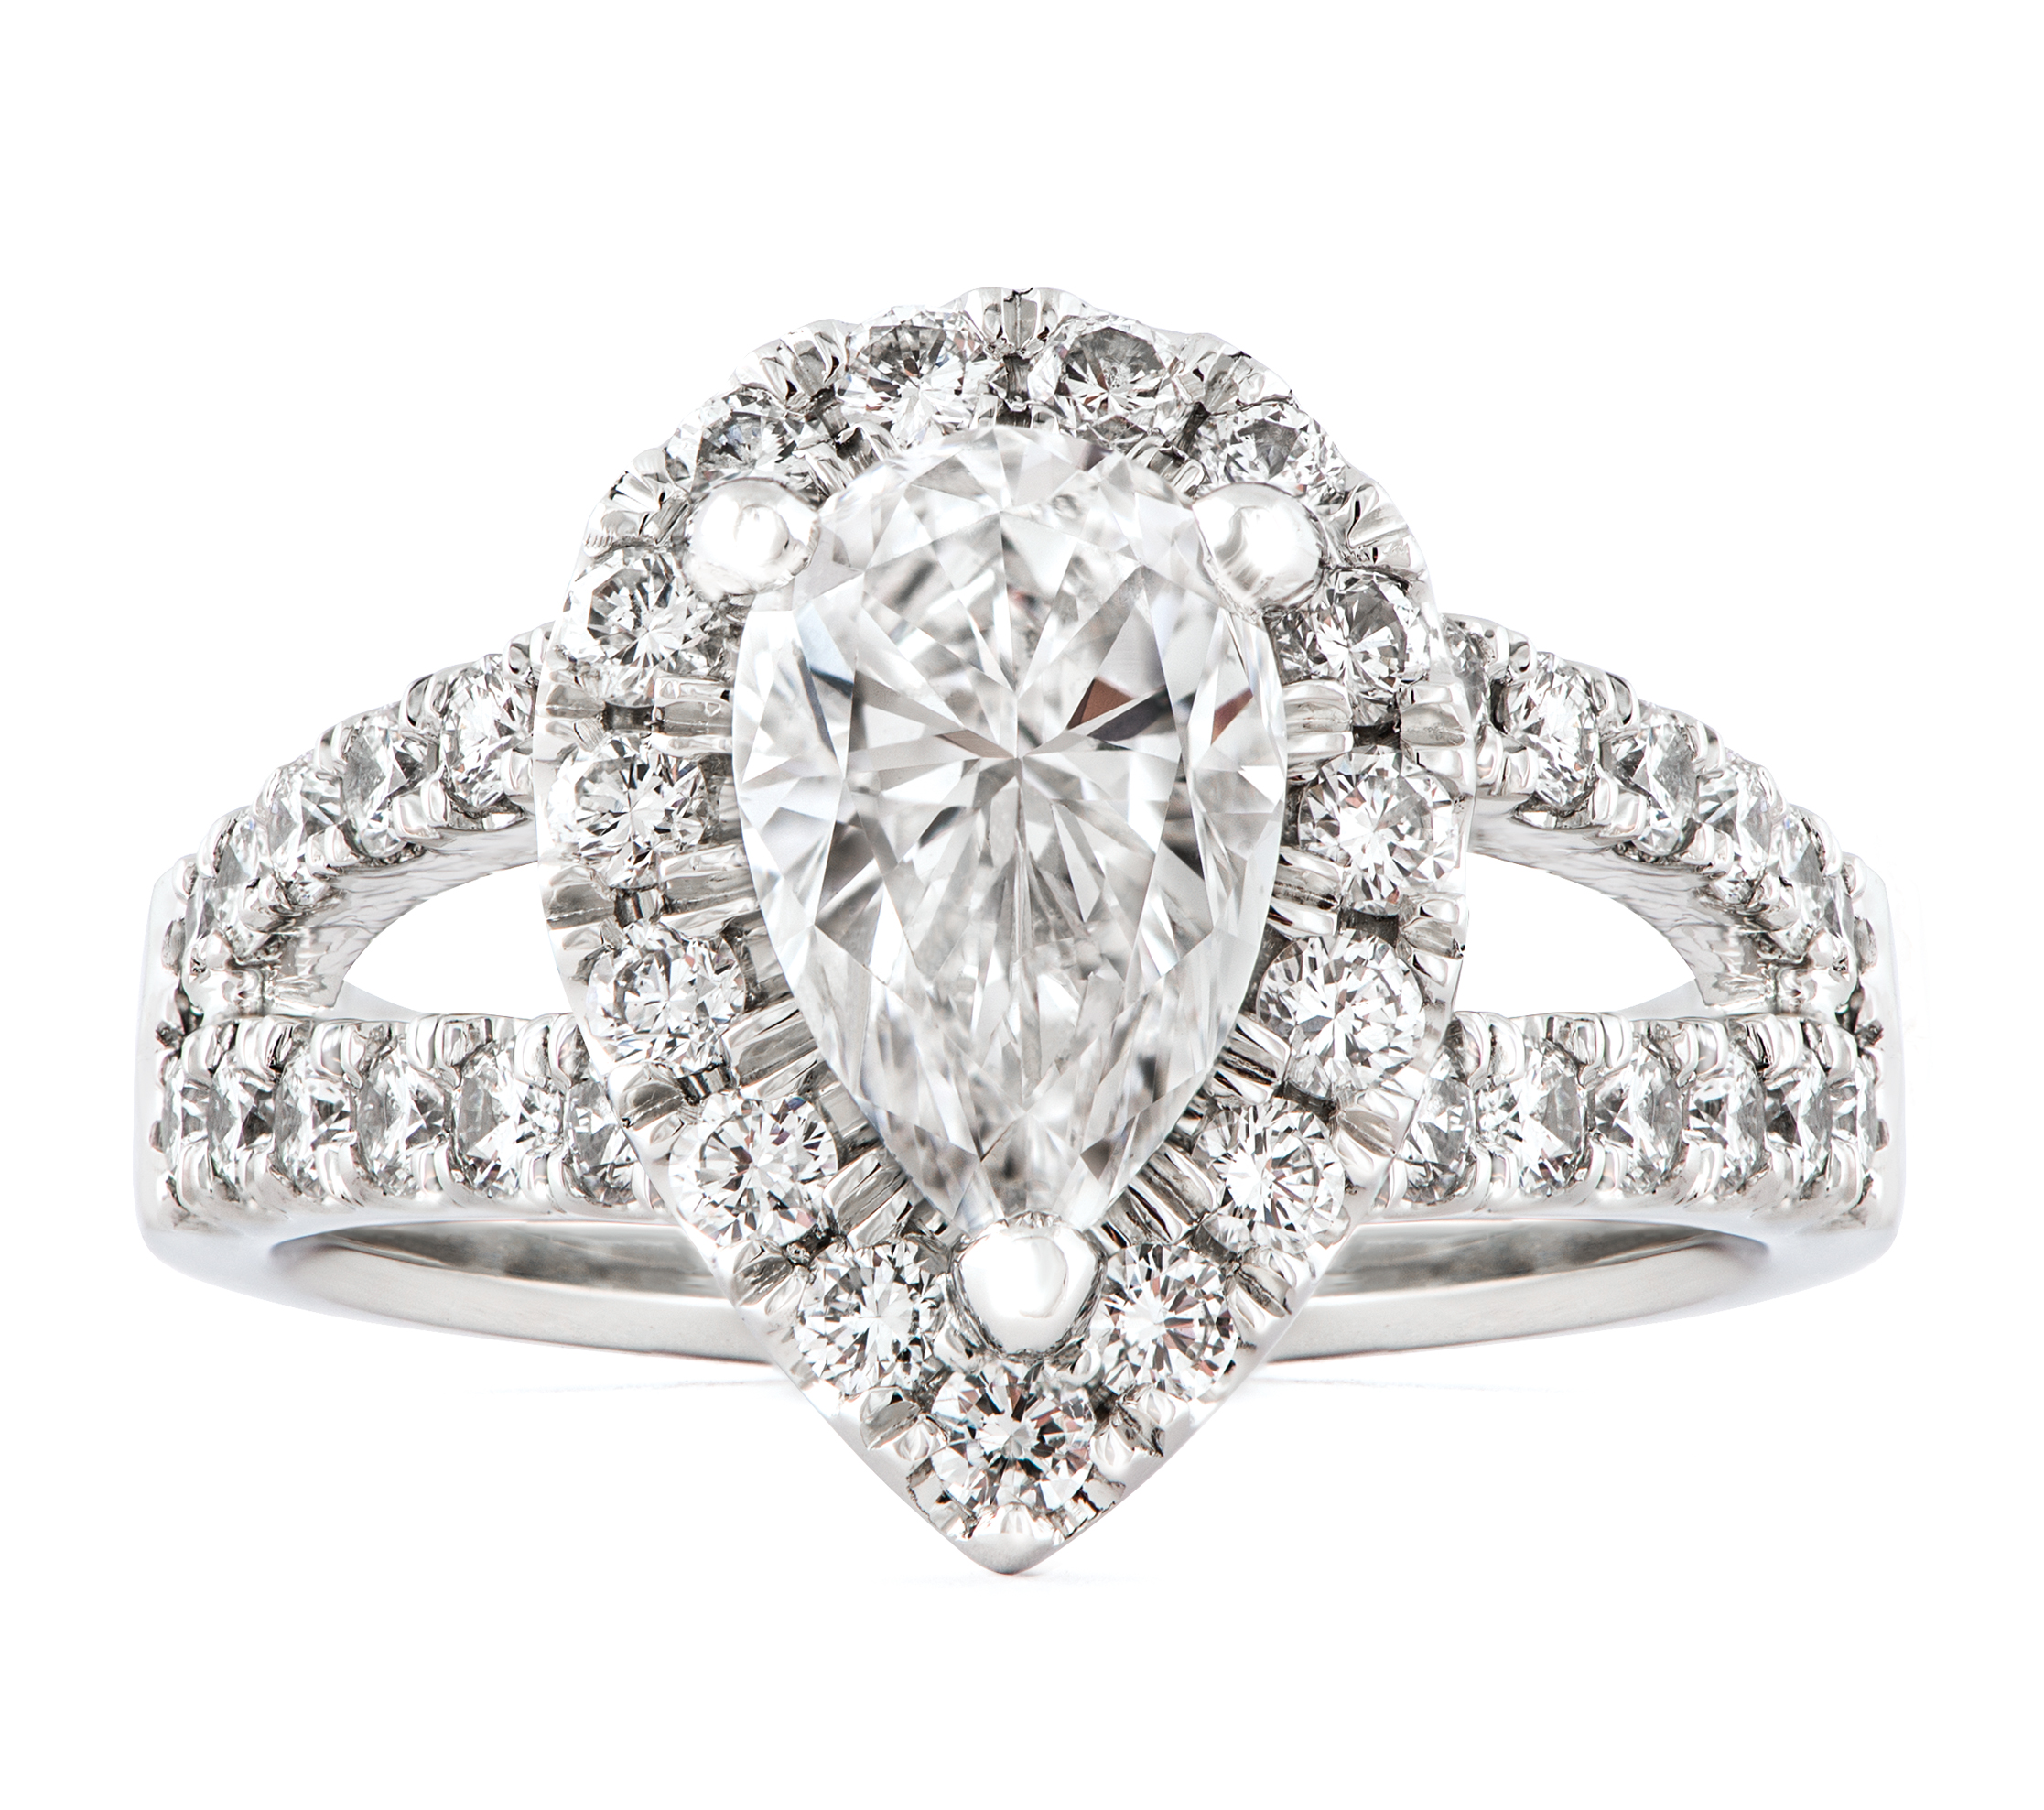 The Pear On The Other Hand, Is A Hybrid Between A Dazzling Round And The  Elongated, Full Marquise Cut The End Result, A Teardrop Shape That Is